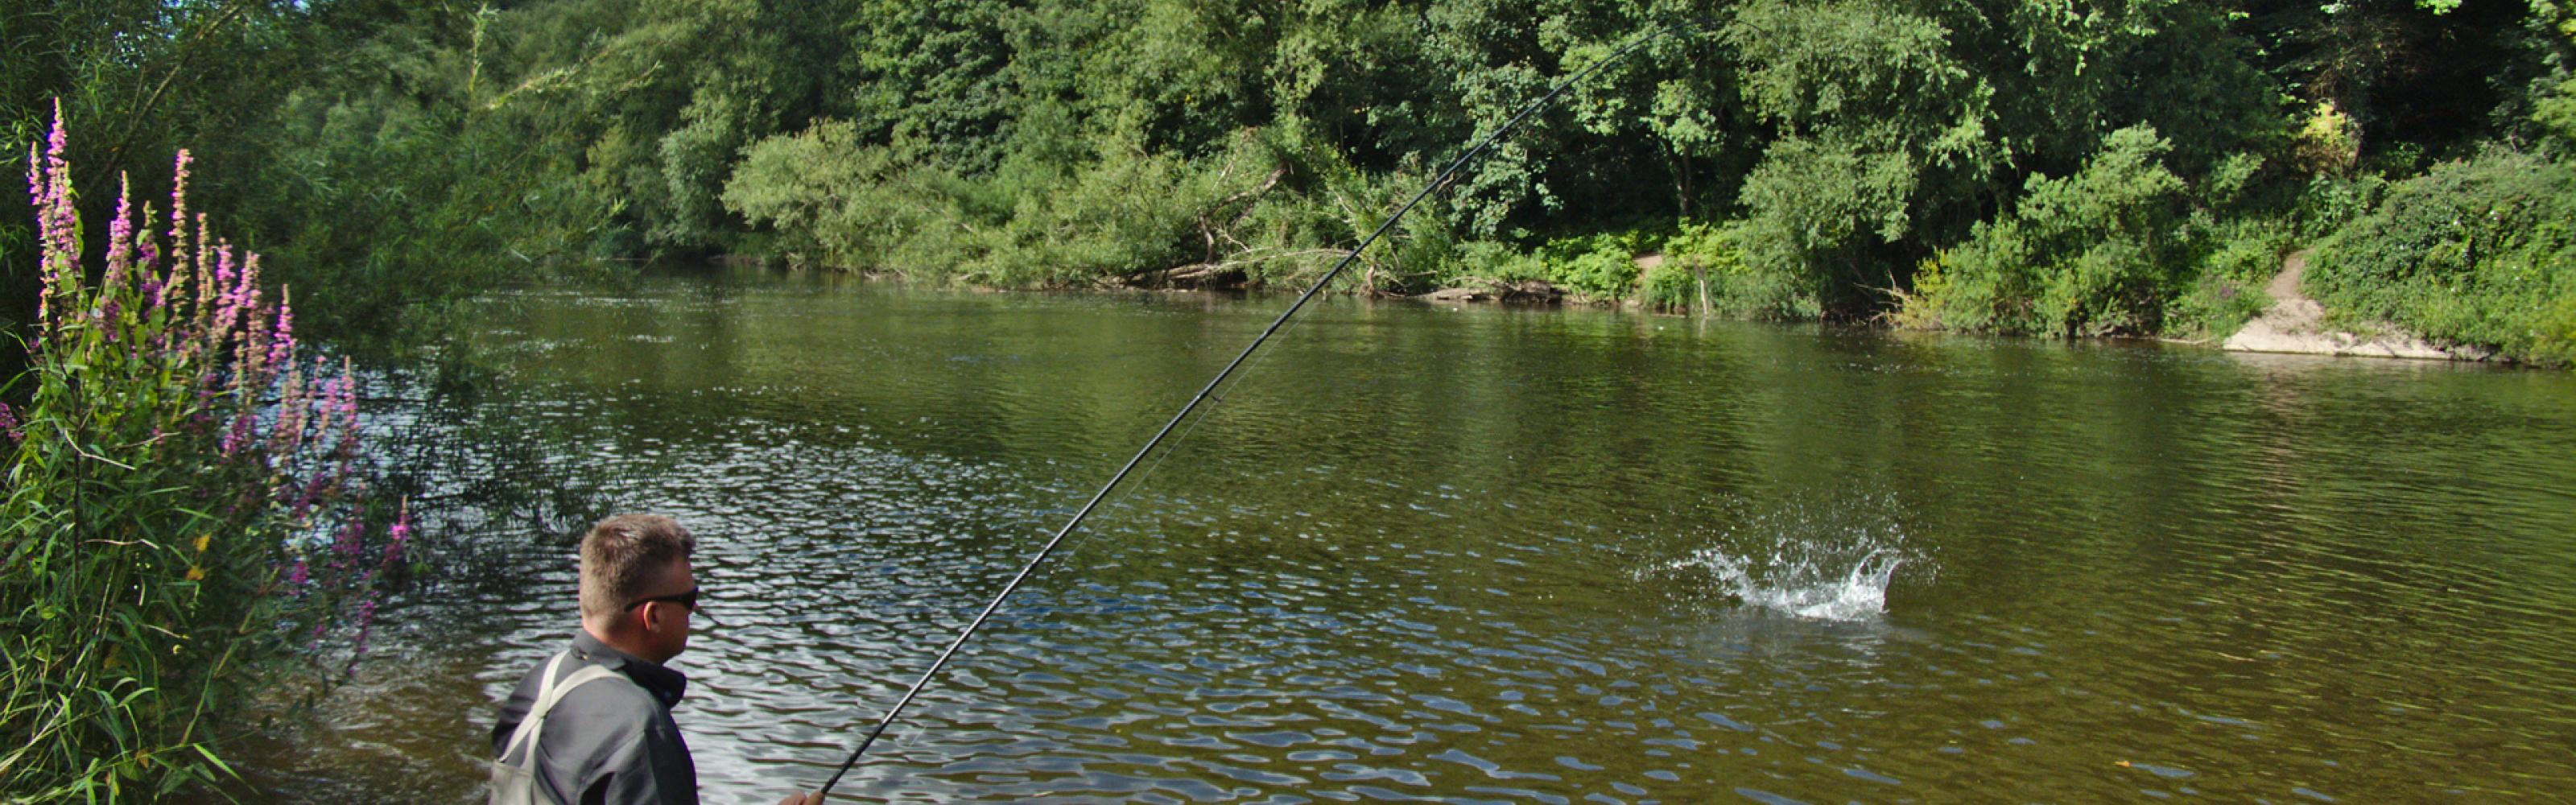 Fishing in Wales - all you need to know | Visit Wales